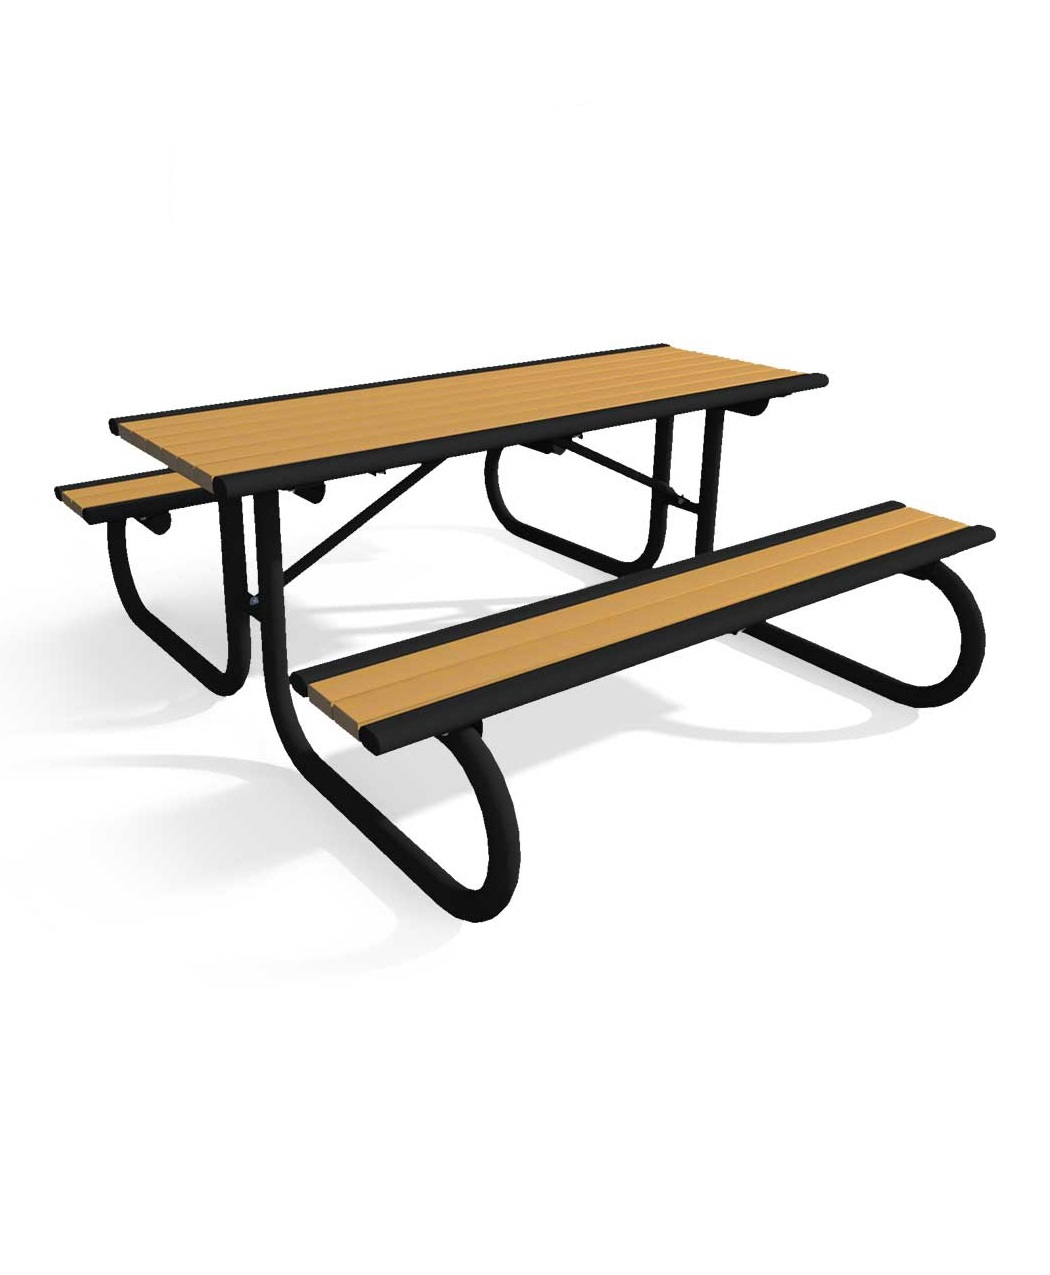 Enjoyable Richmond Series Recycled Plastic Picnic Table Park Warehouse Evergreenethics Interior Chair Design Evergreenethicsorg